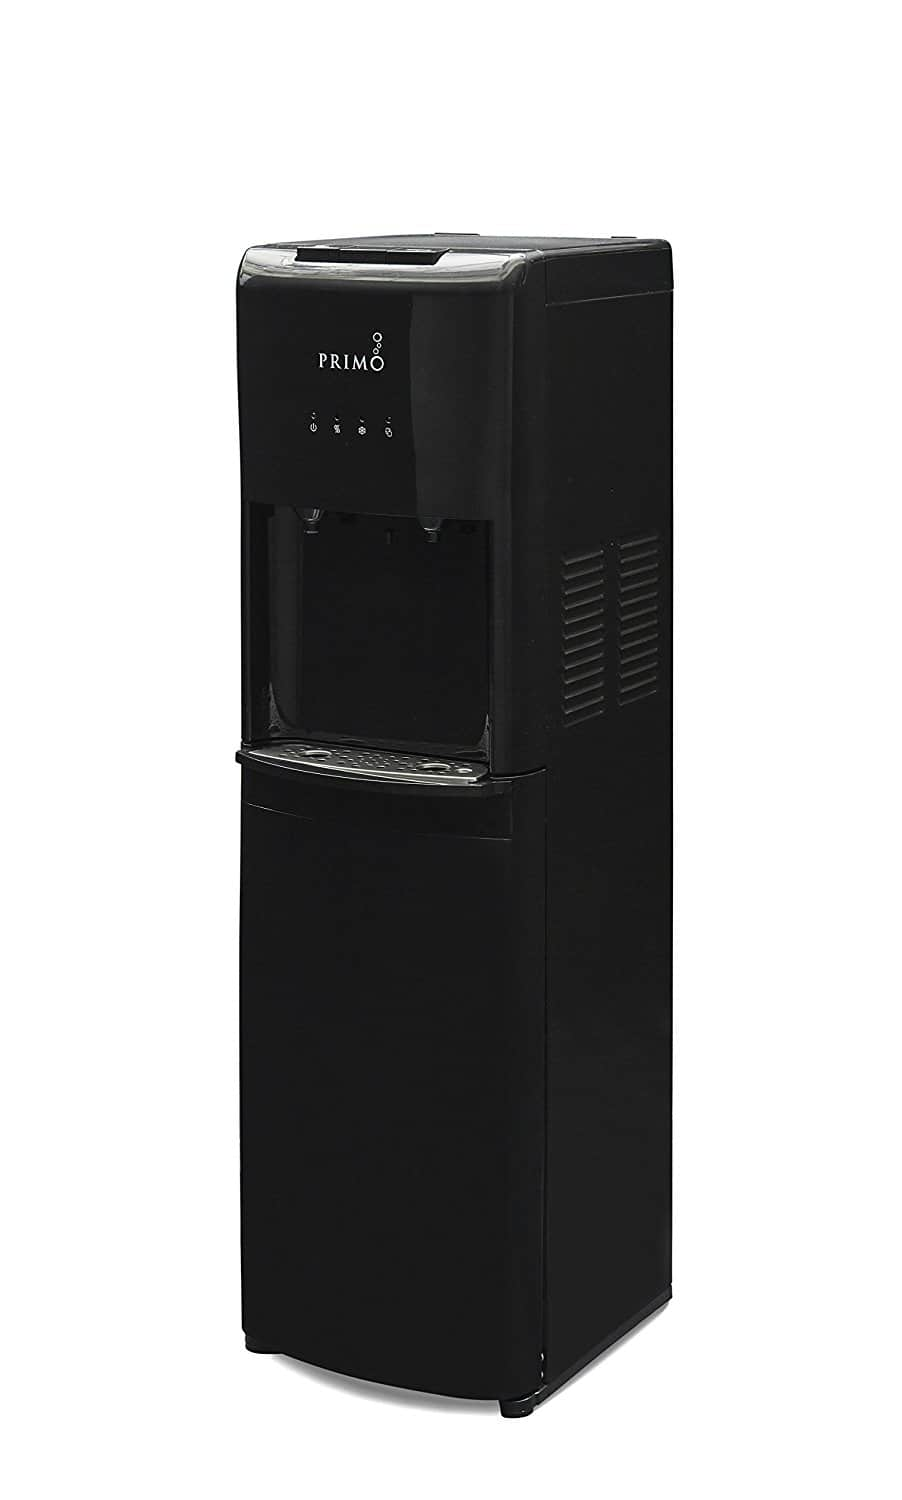 Walmart - Primo Black 2 Spout Bottom Load Hot and Cold Water Cooler Dispenser $149